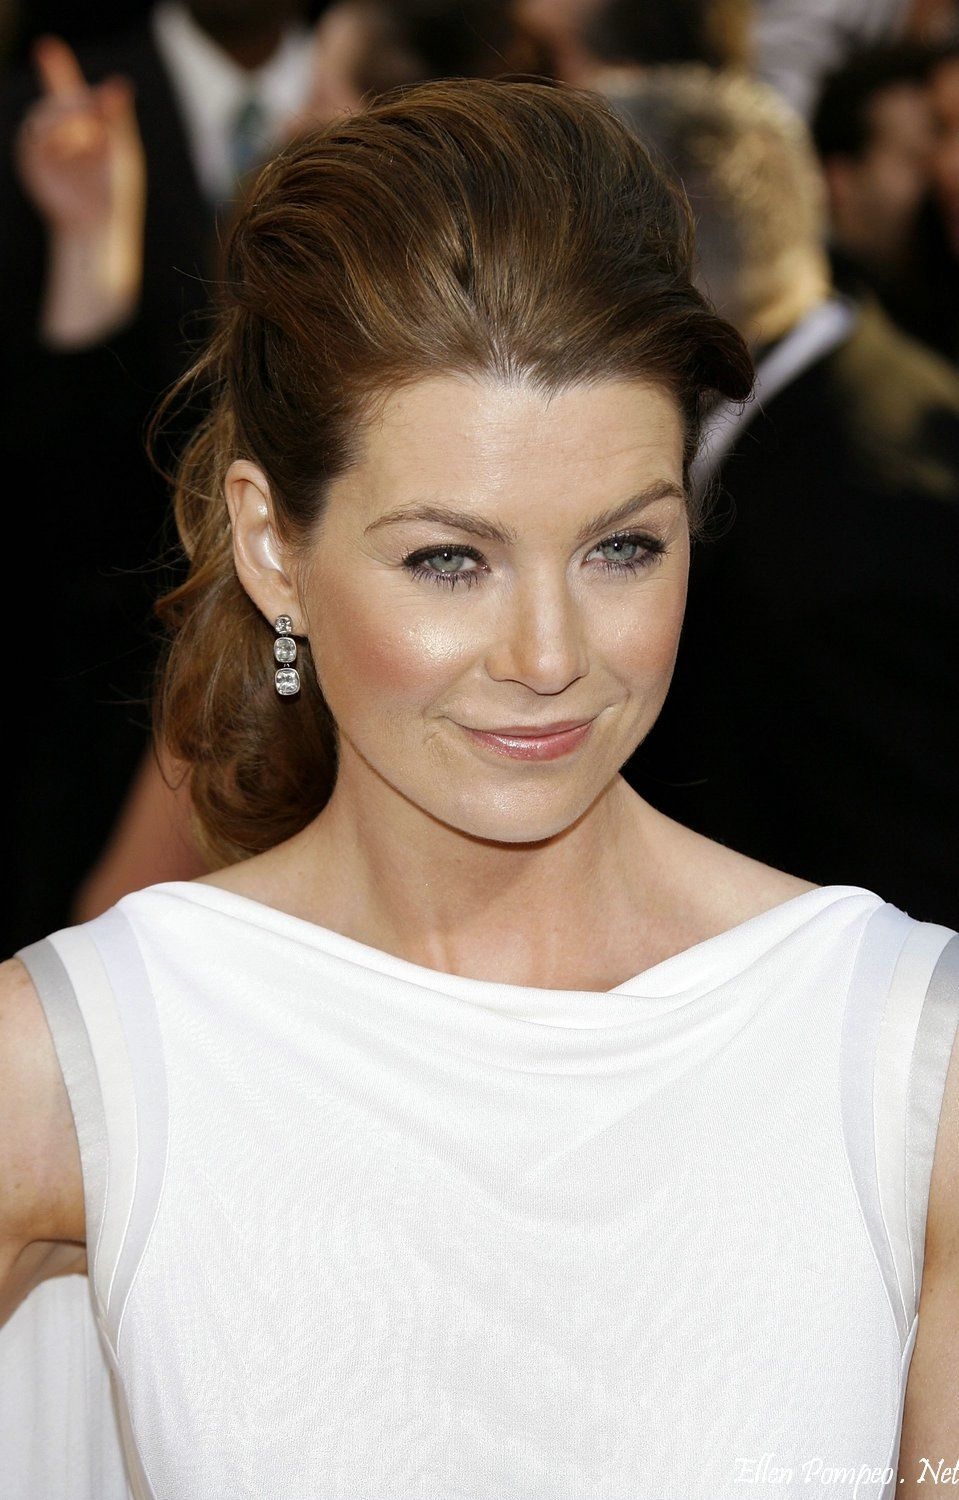 ellen pompeo and justin chambersellen pompeo husband, ellen pompeo wiki, ellen pompeo 2017, ellen pompeo vk, ellen pompeo house, ellen pompeo insta, ellen pompeo son, ellen pompeo director, ellen pompeo tumblr, ellen pompeo and justin chambers, ellen pompeo and jake gyllenhaal, ellen pompeo style, ellen pompeo and sandra oh, ellen pompeo salary, ellen pompeo toes, ellen pompeo gif hunt, ellen pompeo facts, ellen pompeo news, ellen pompeo i, ellen pompeo earnings